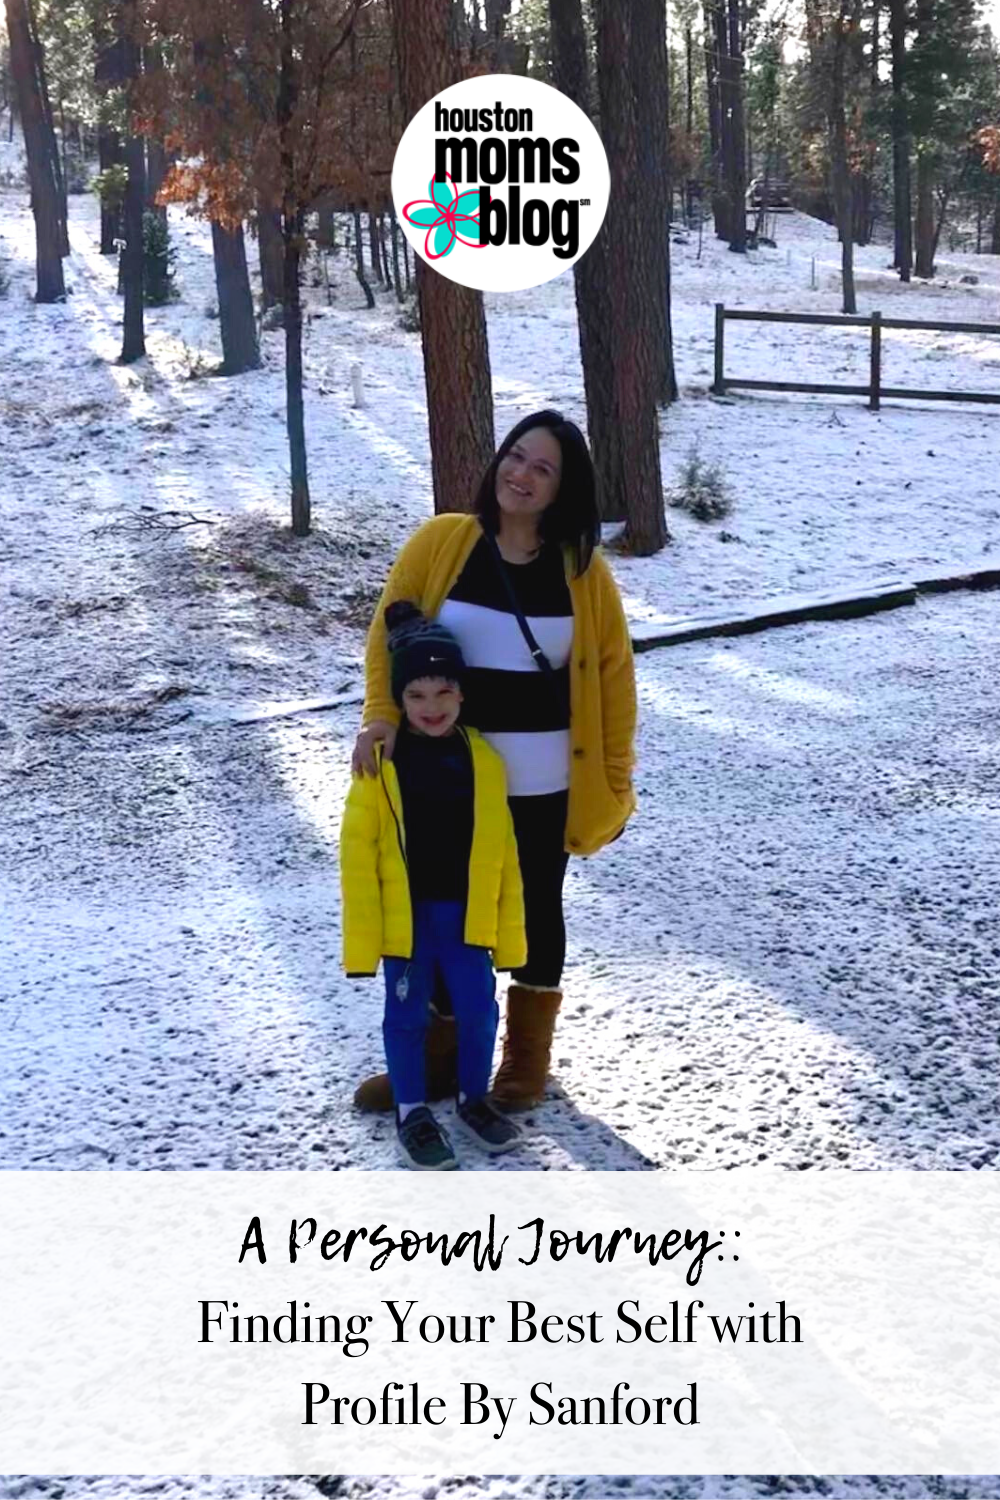 "Houston Moms Blog ""A Personal Journey:: Finding Your Best Self with Profile By Sanford"" #momsaroundhouston #houstonmomsblog"